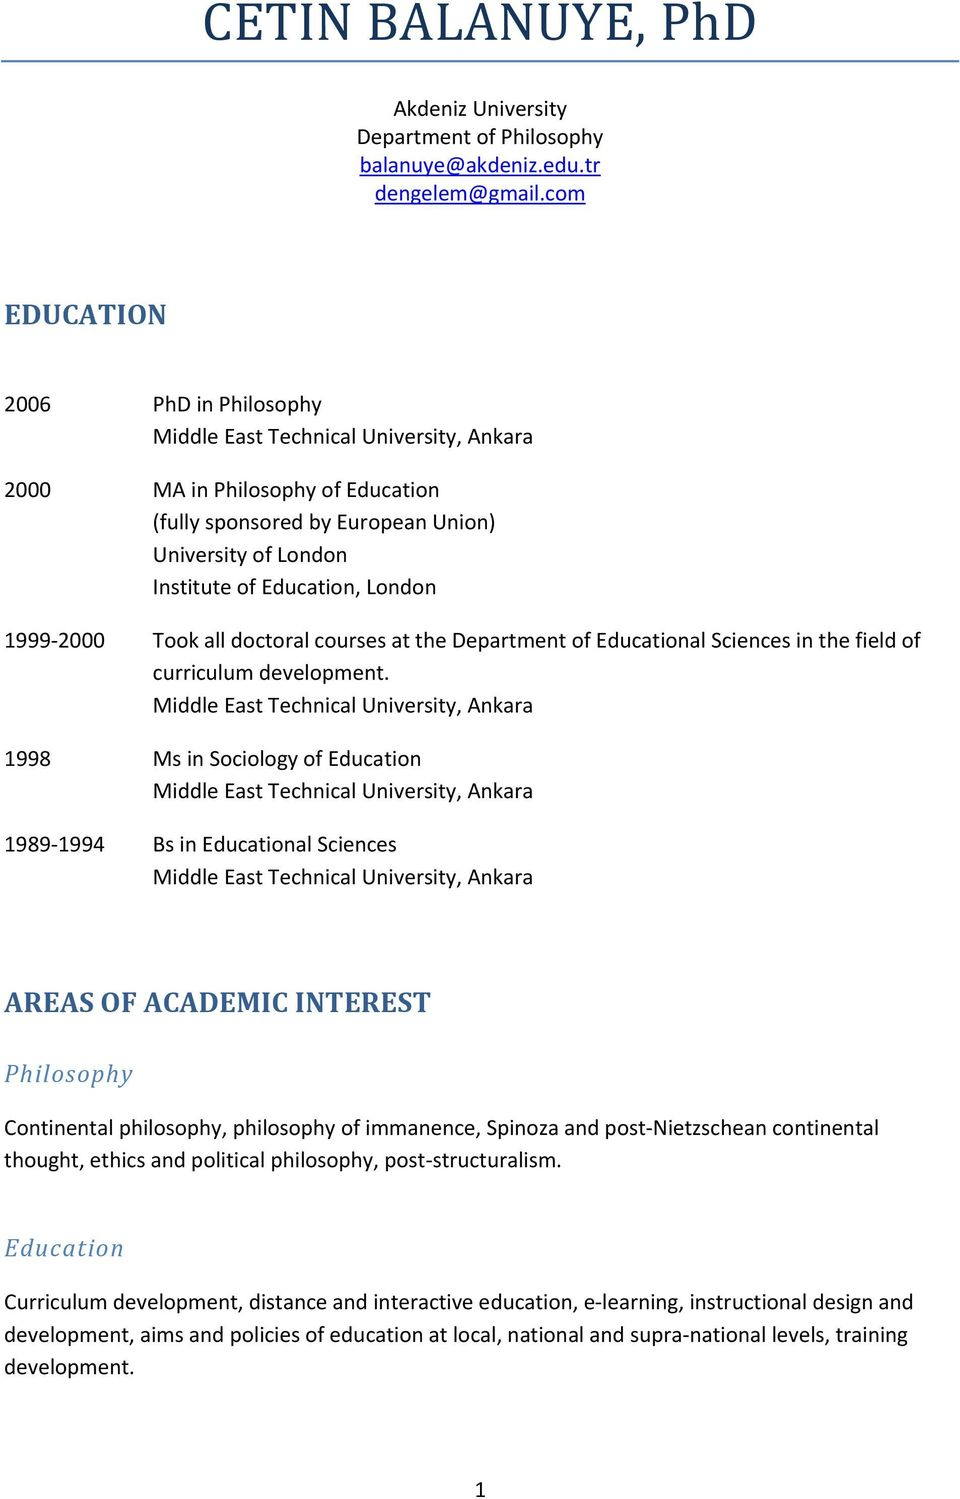 the Department of Educational Sciences in the field of curriculum development.